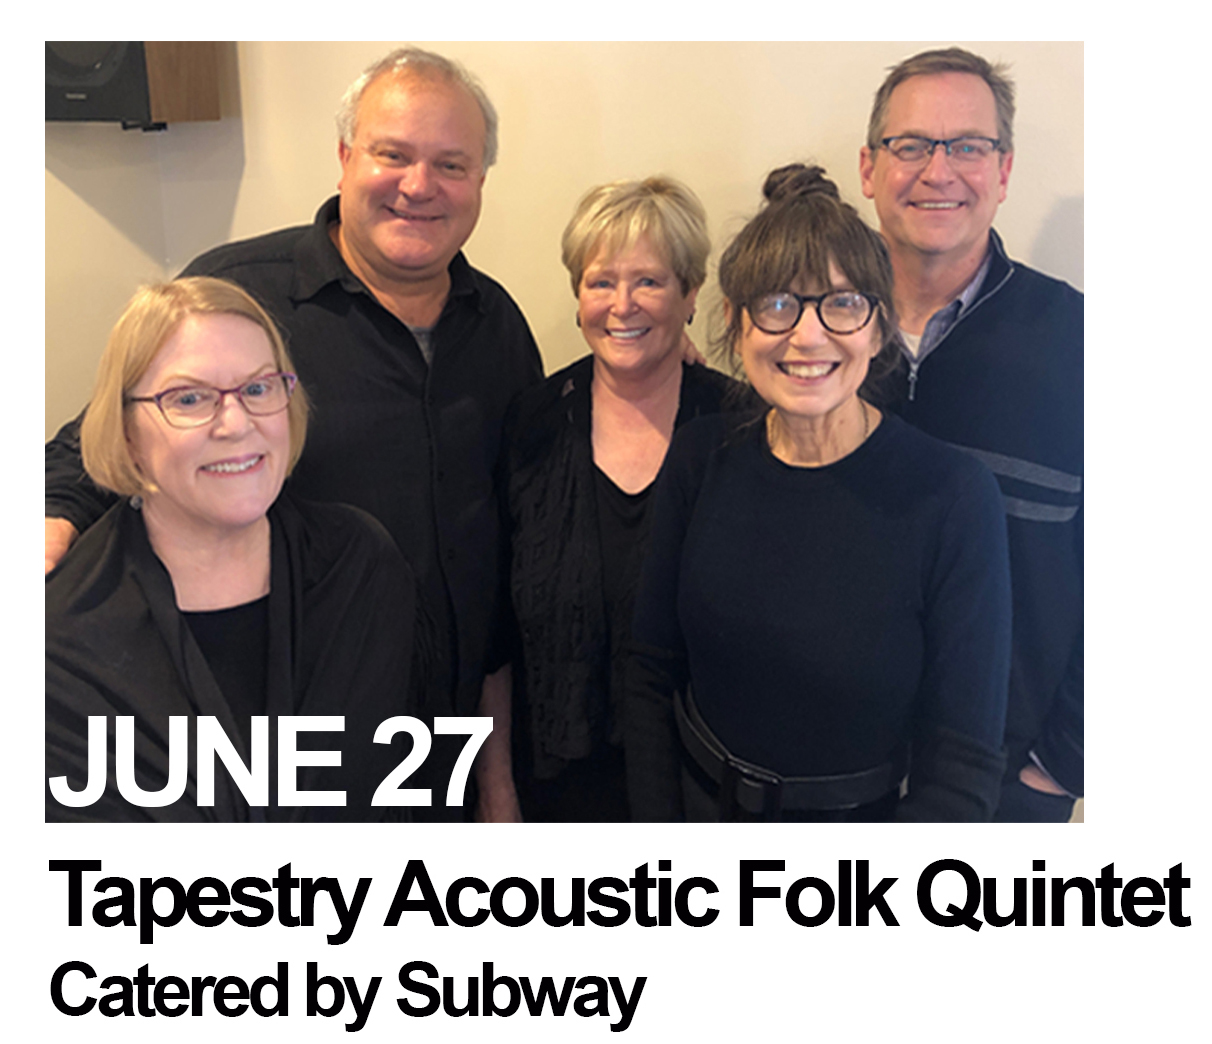 June 27: Tapestry Acoustic Folk Quintet with food by Subway